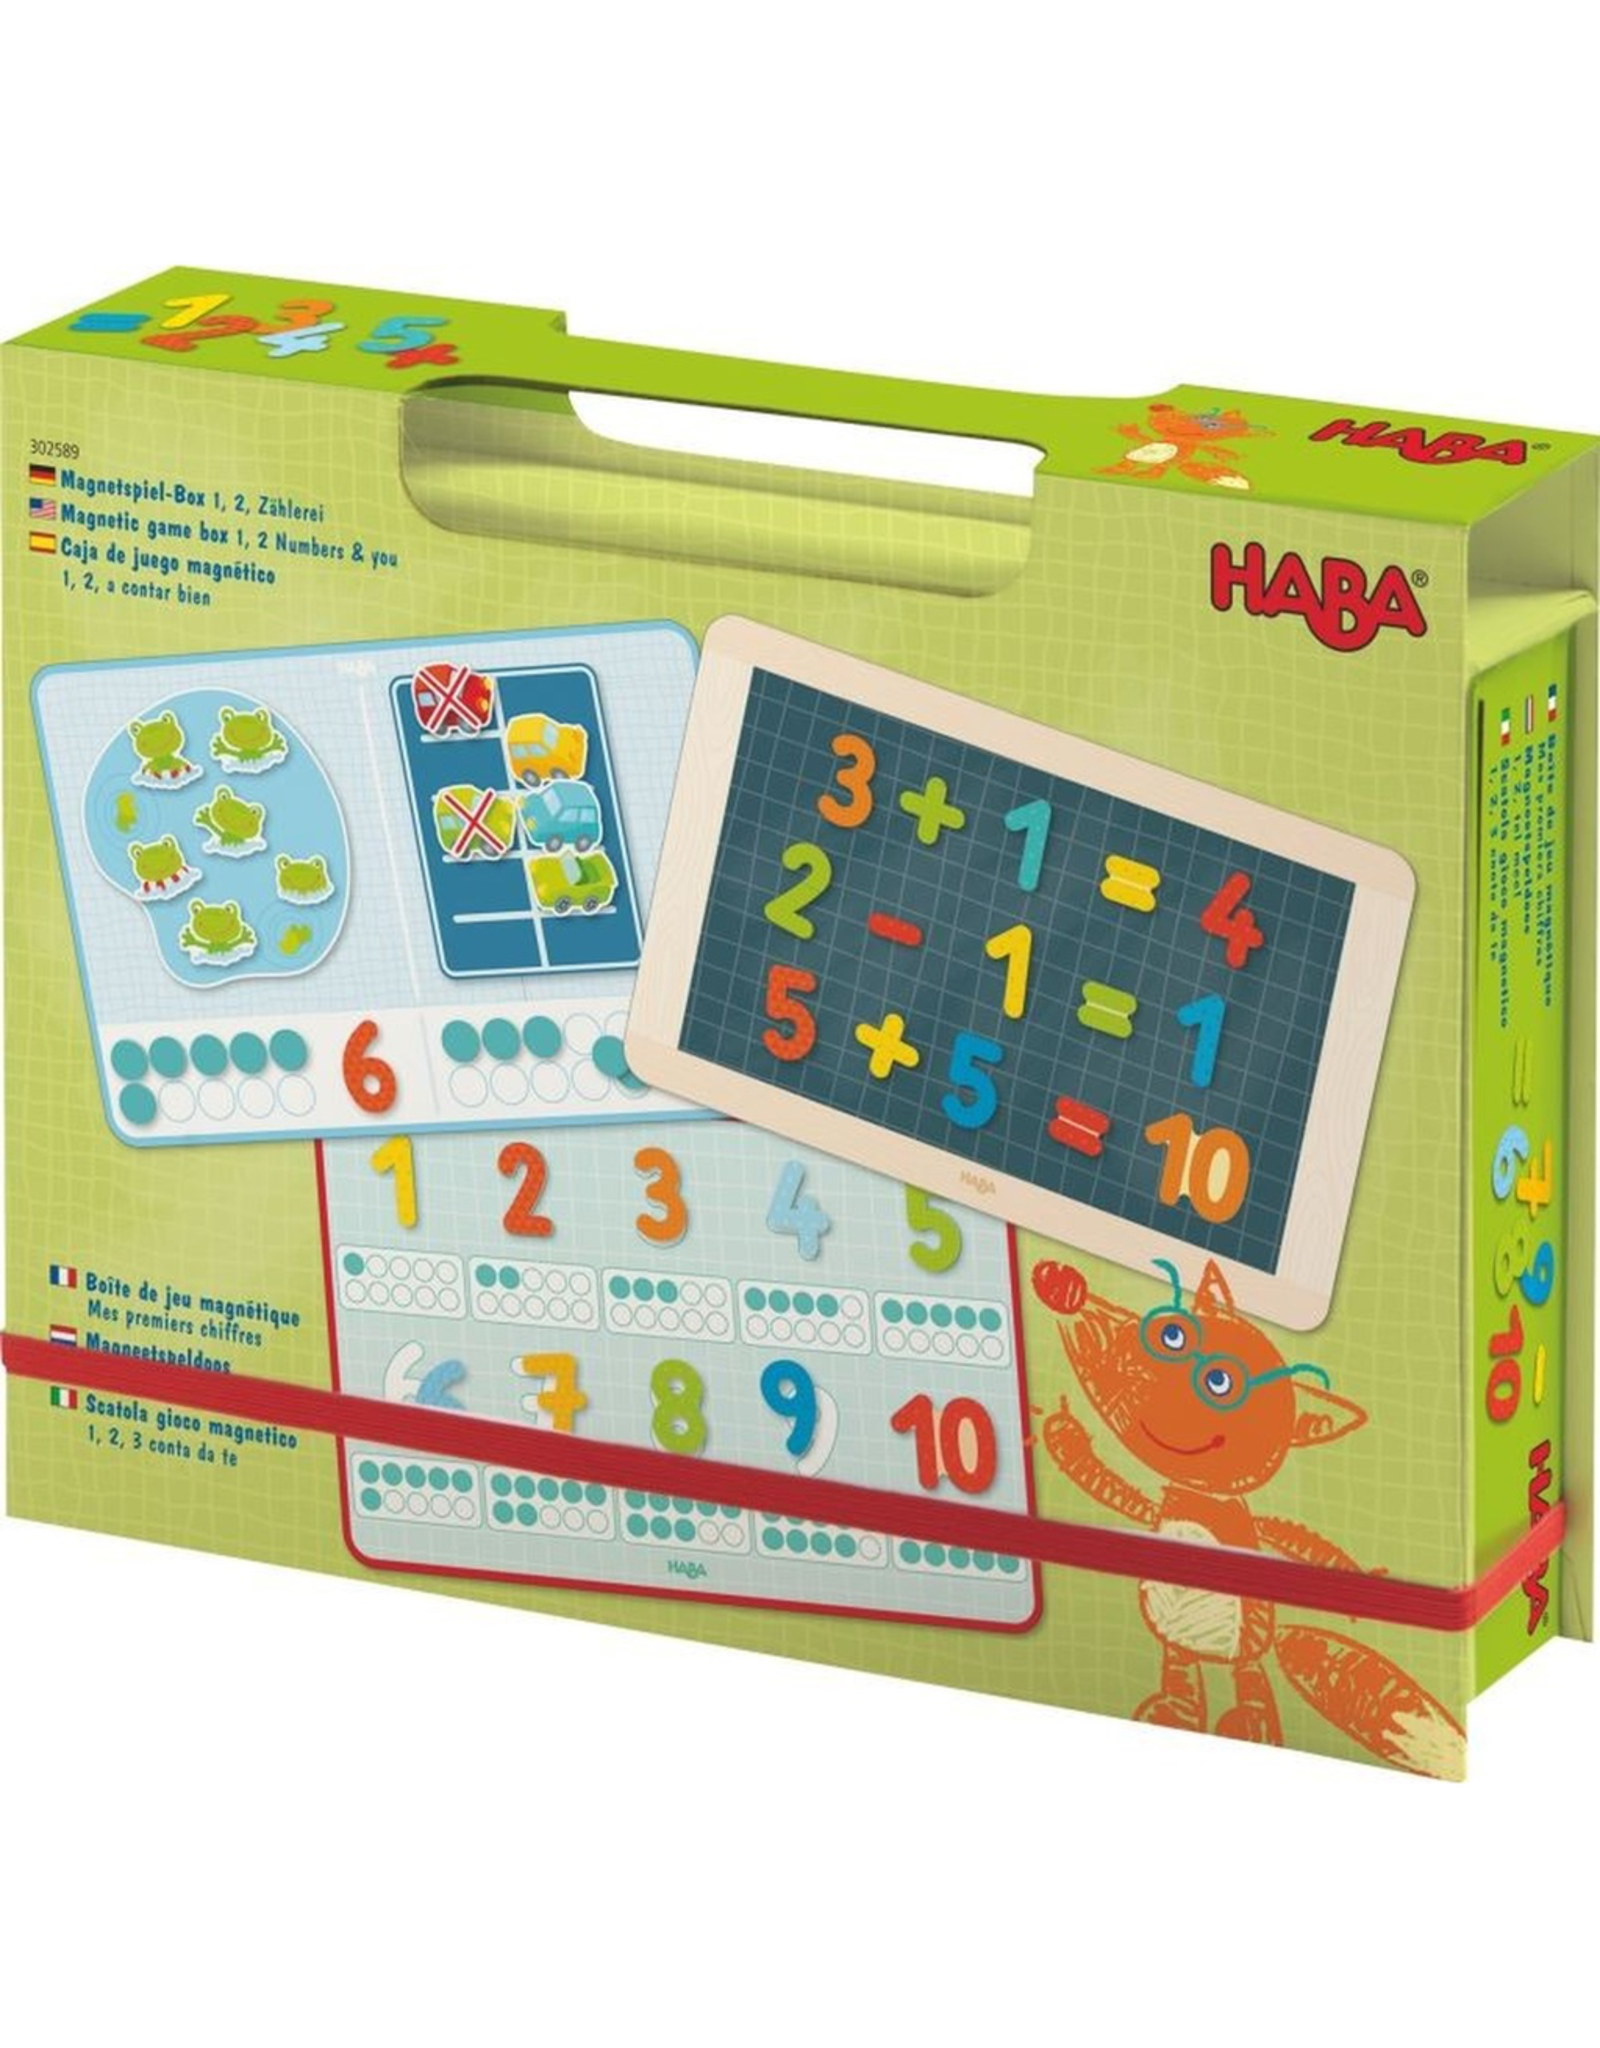 HABA MAGNETIC GAME BOX 1 * 2 NUMBERS & YOU